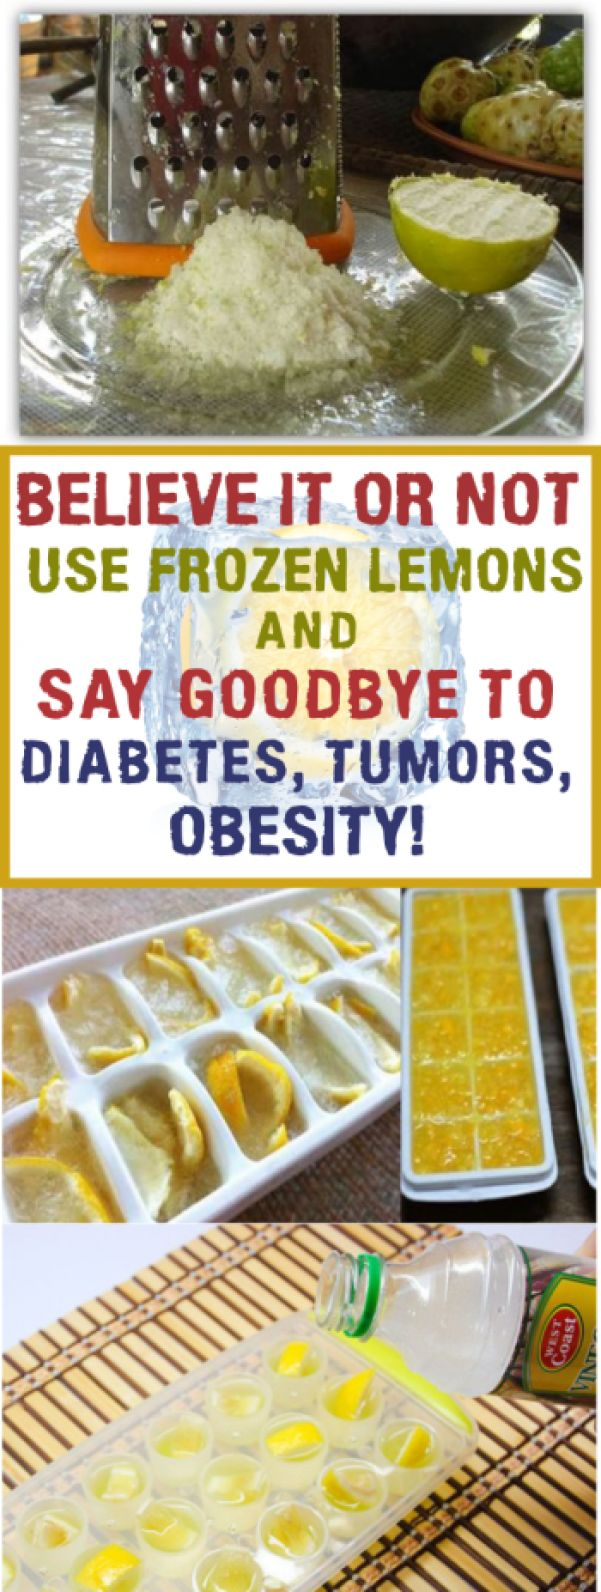 Believe It Or Not Use Frozen Lemons And Say Goodbye To Diabetes Tumors Obesity Detoxdrinks Frozen Lemon Lemons Food